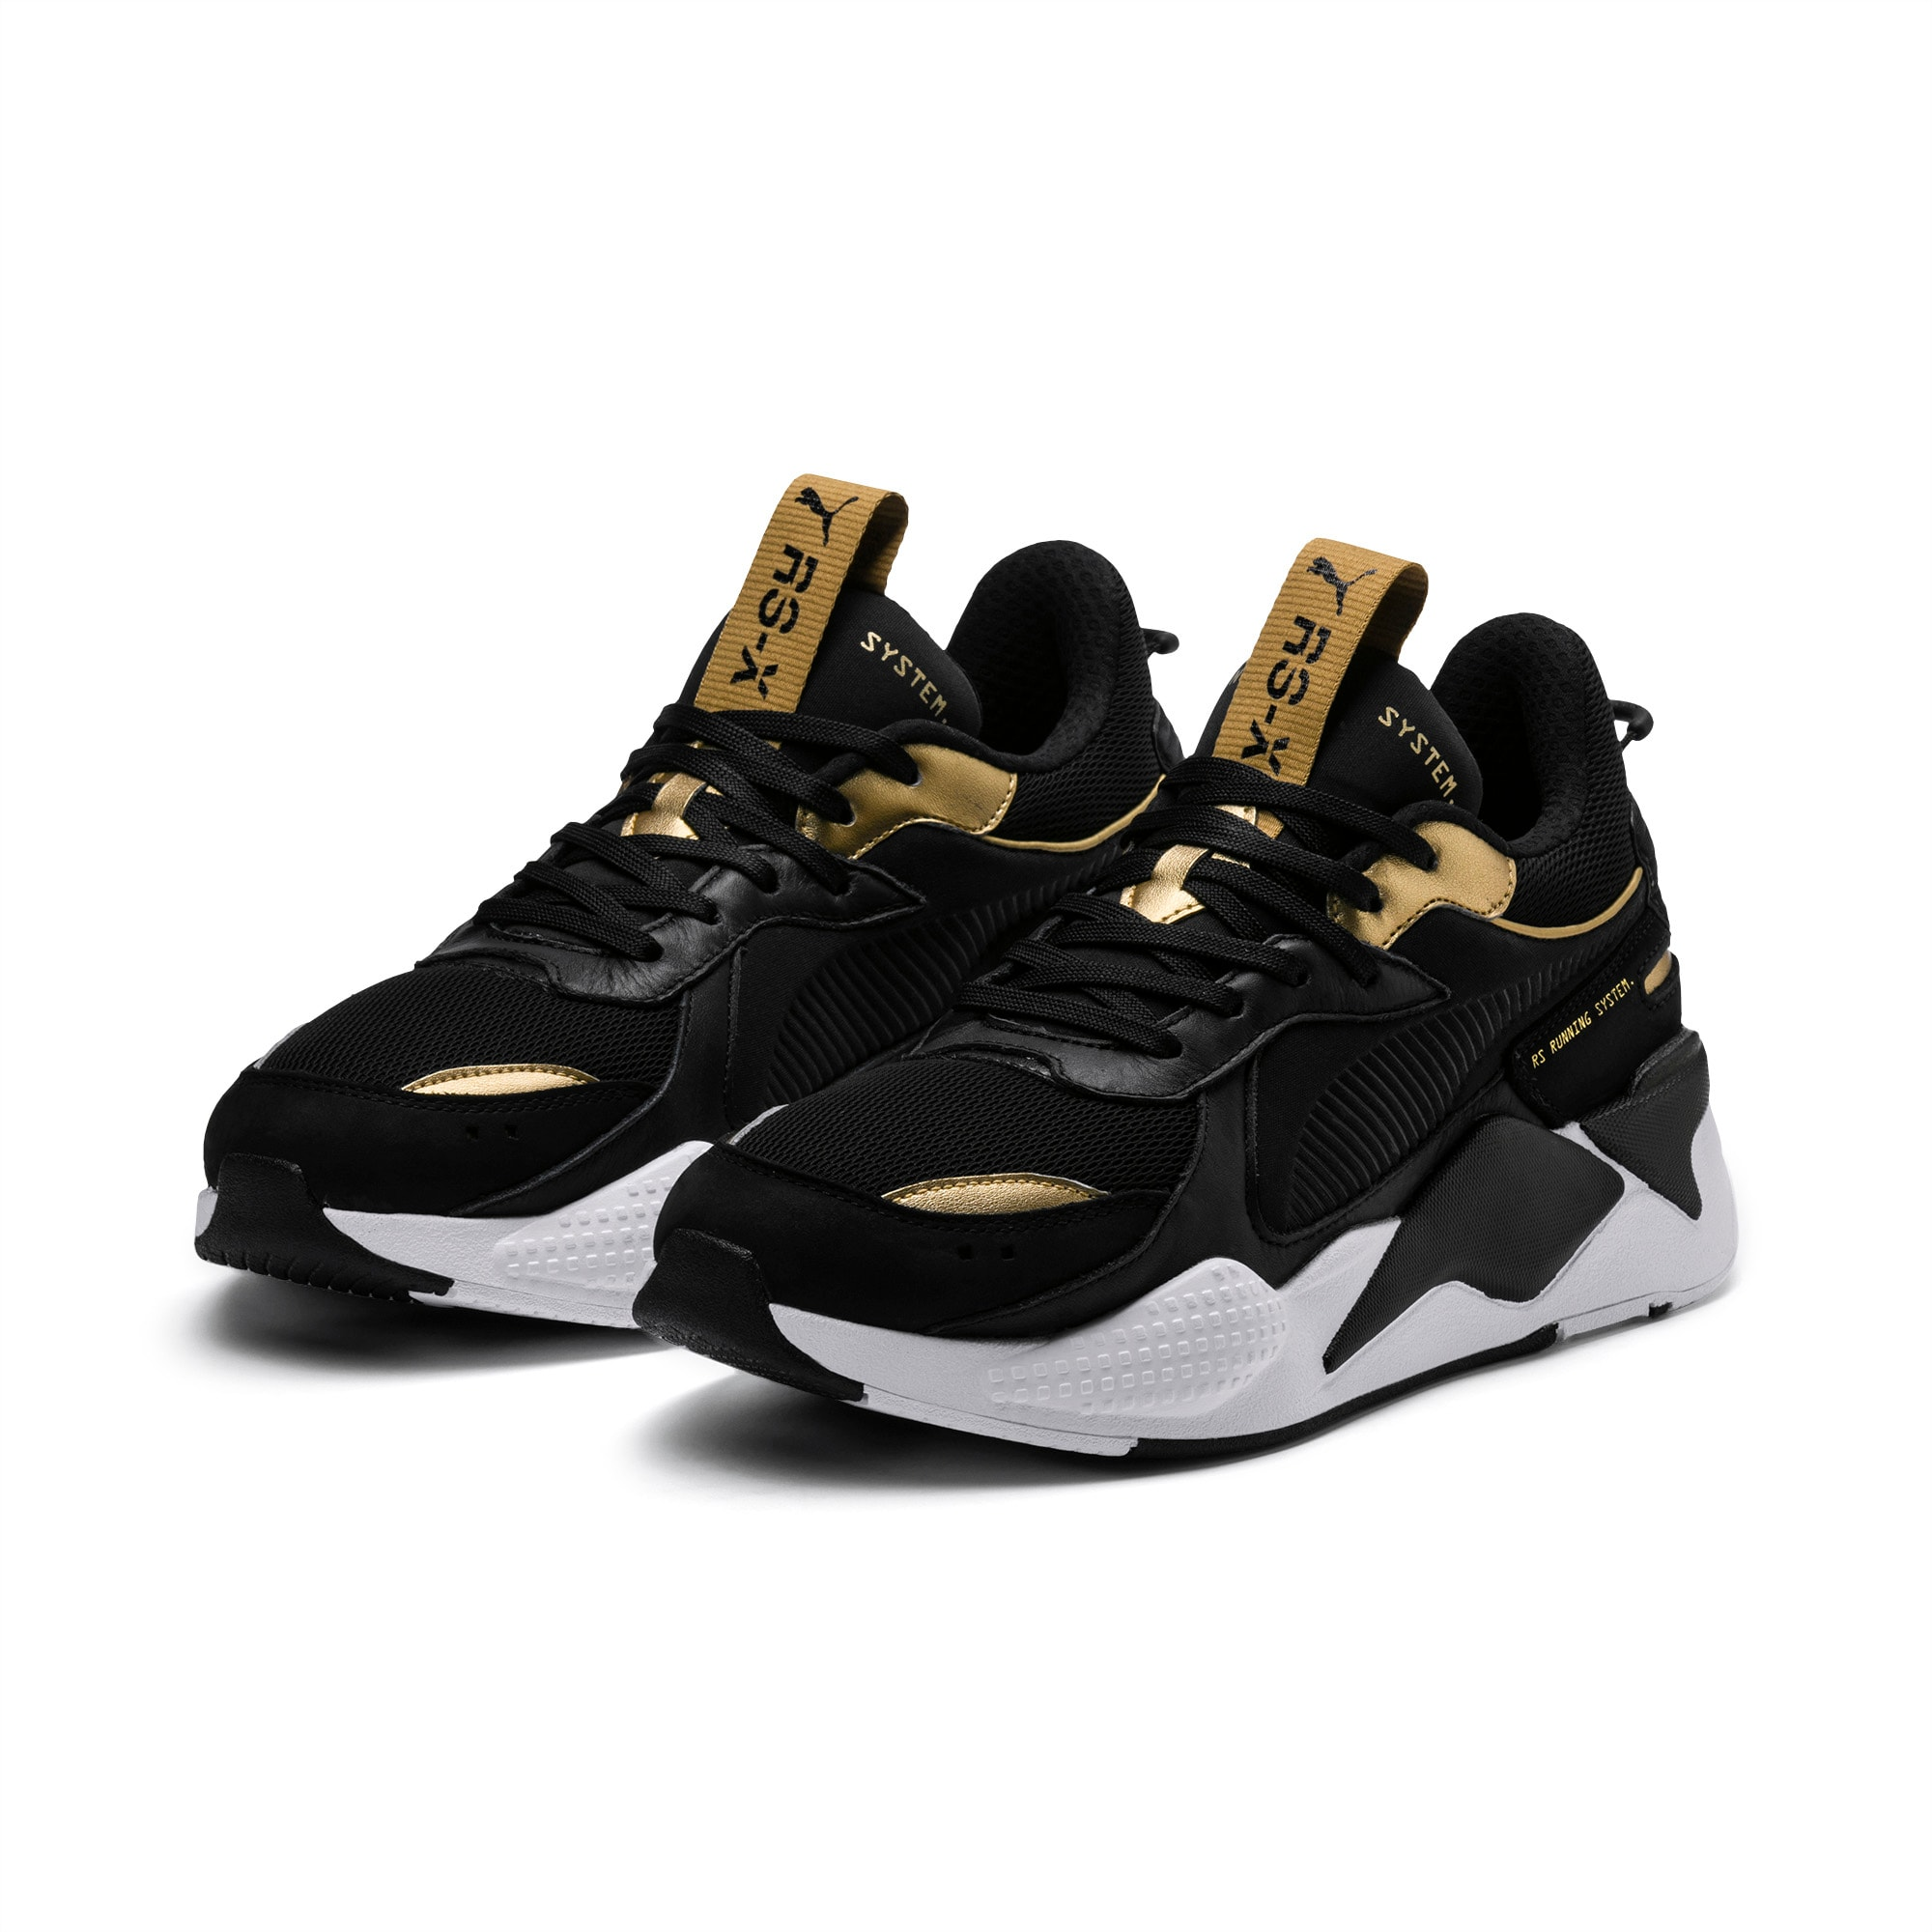 puma black and gold shoes